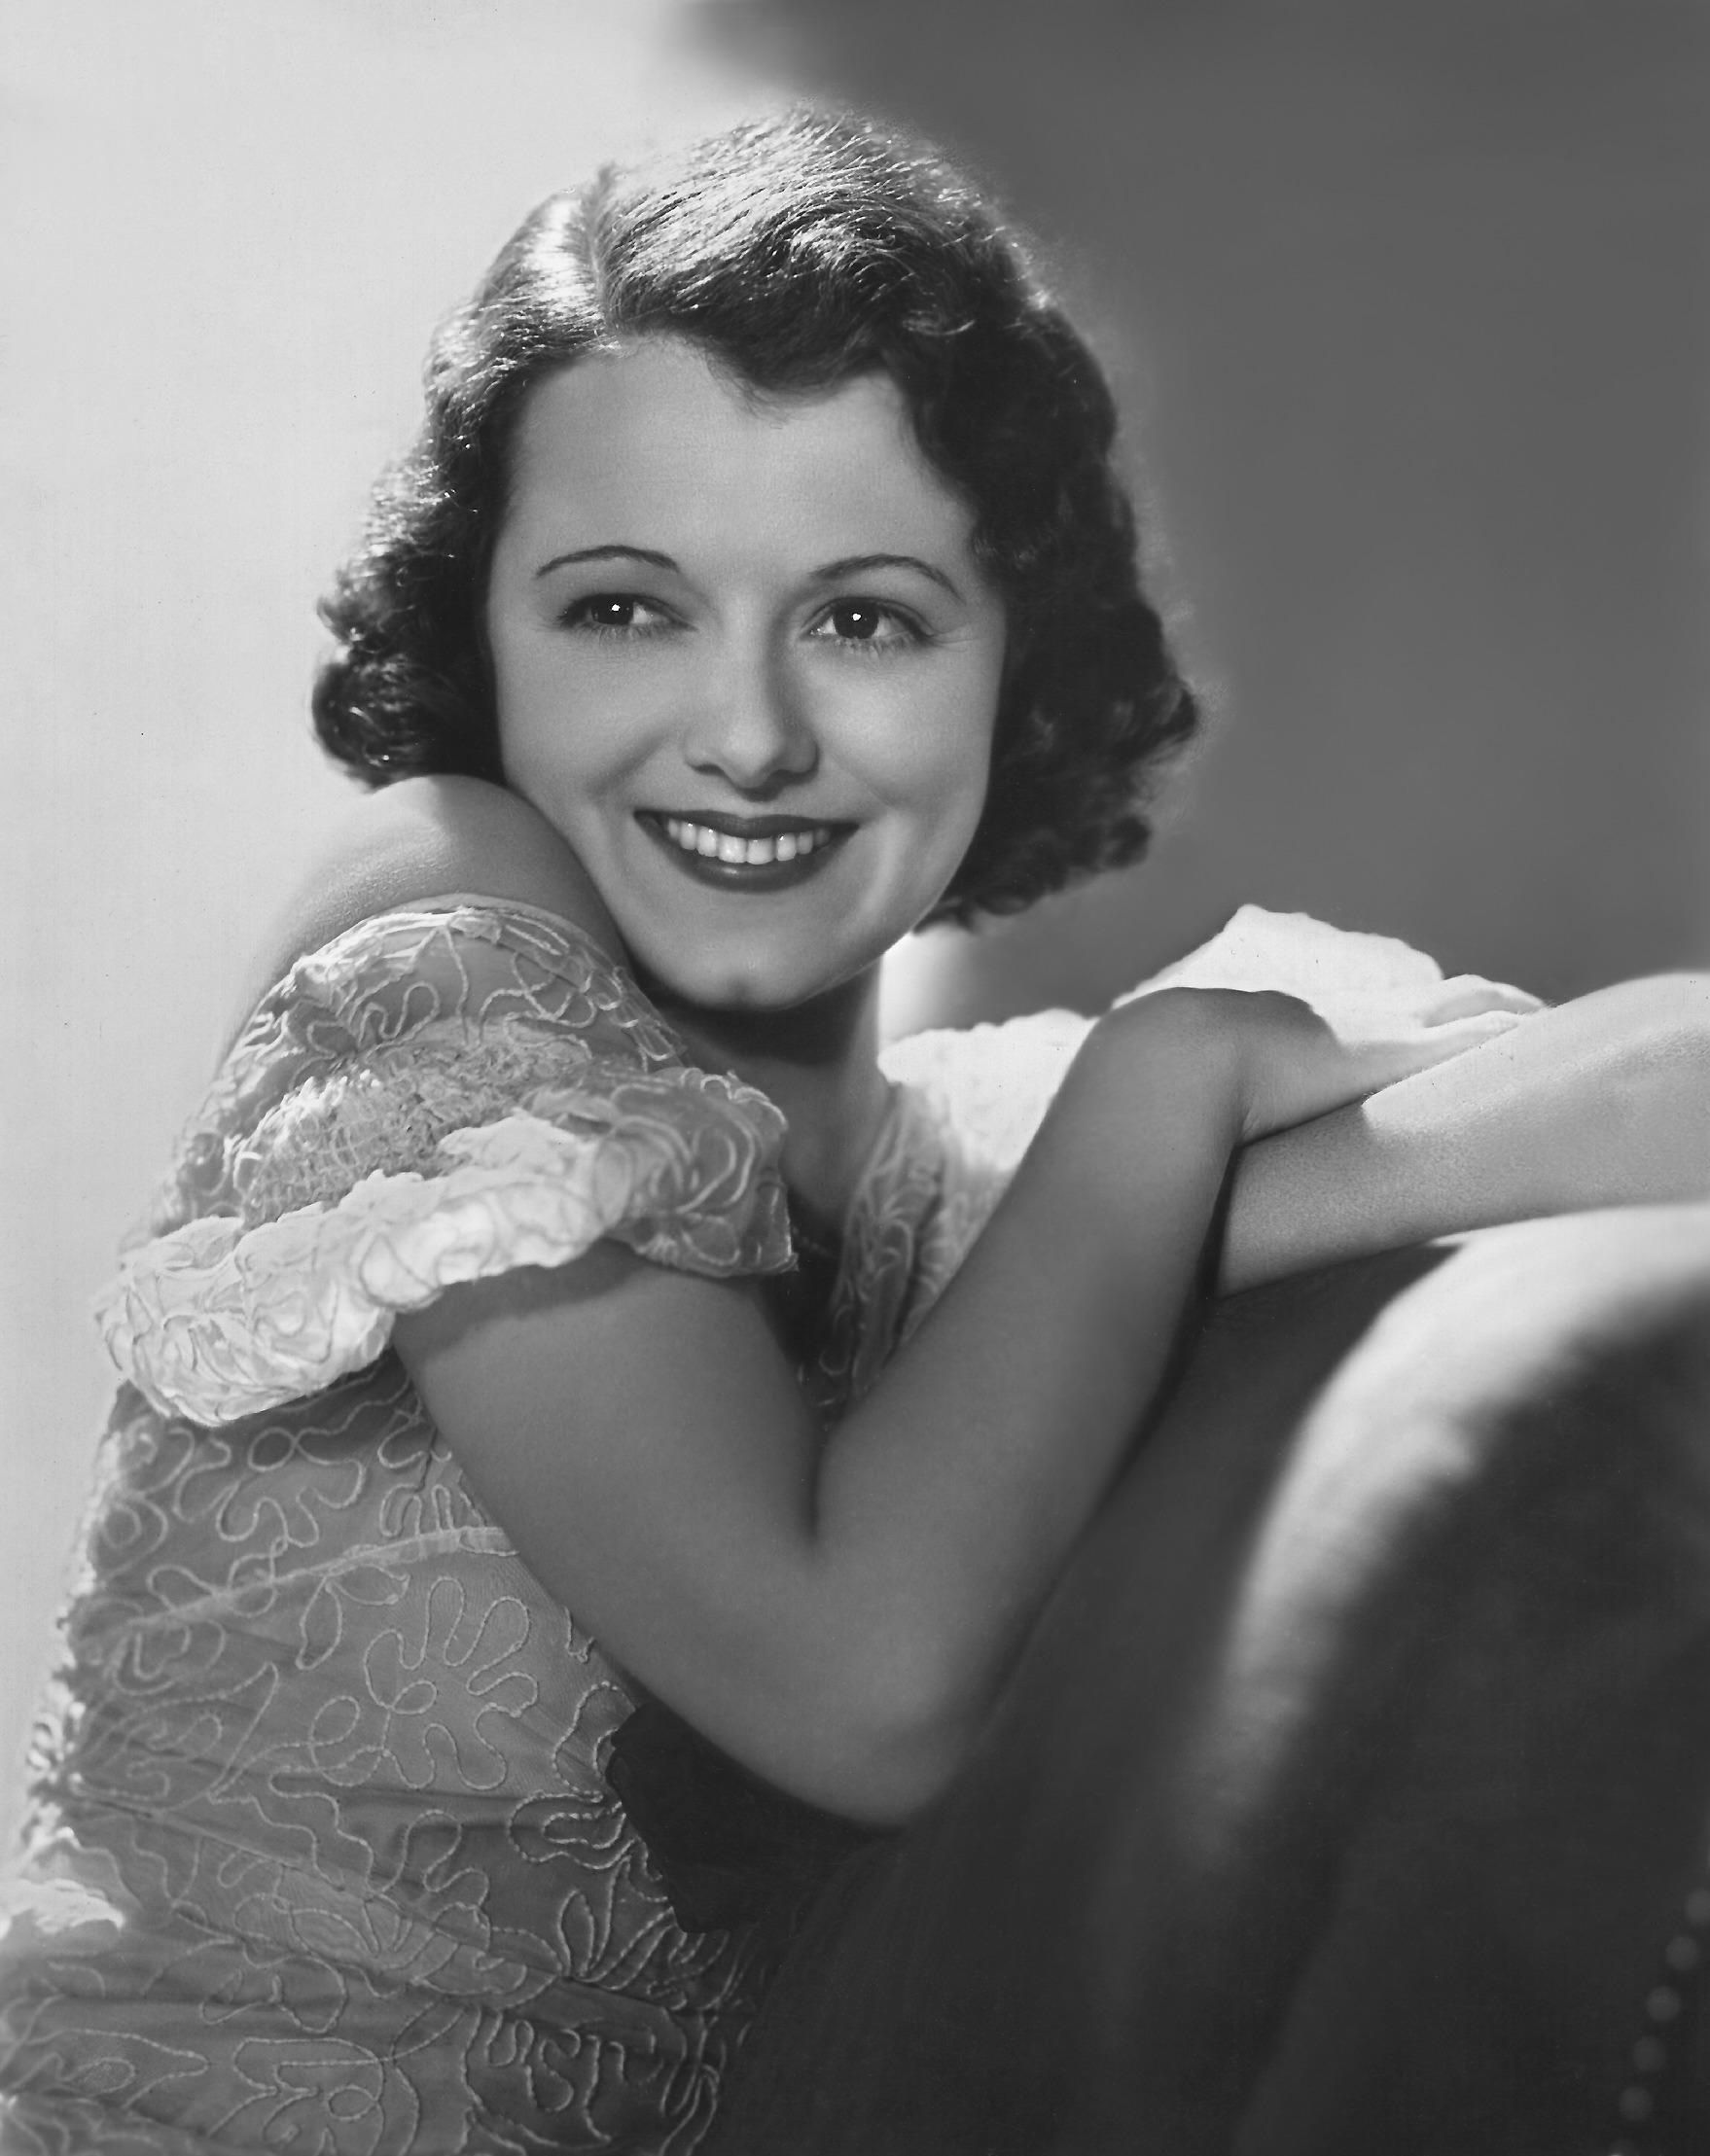 Janet Gaynor nudes (97 photos), Ass, Leaked, Selfie, cameltoe 2019